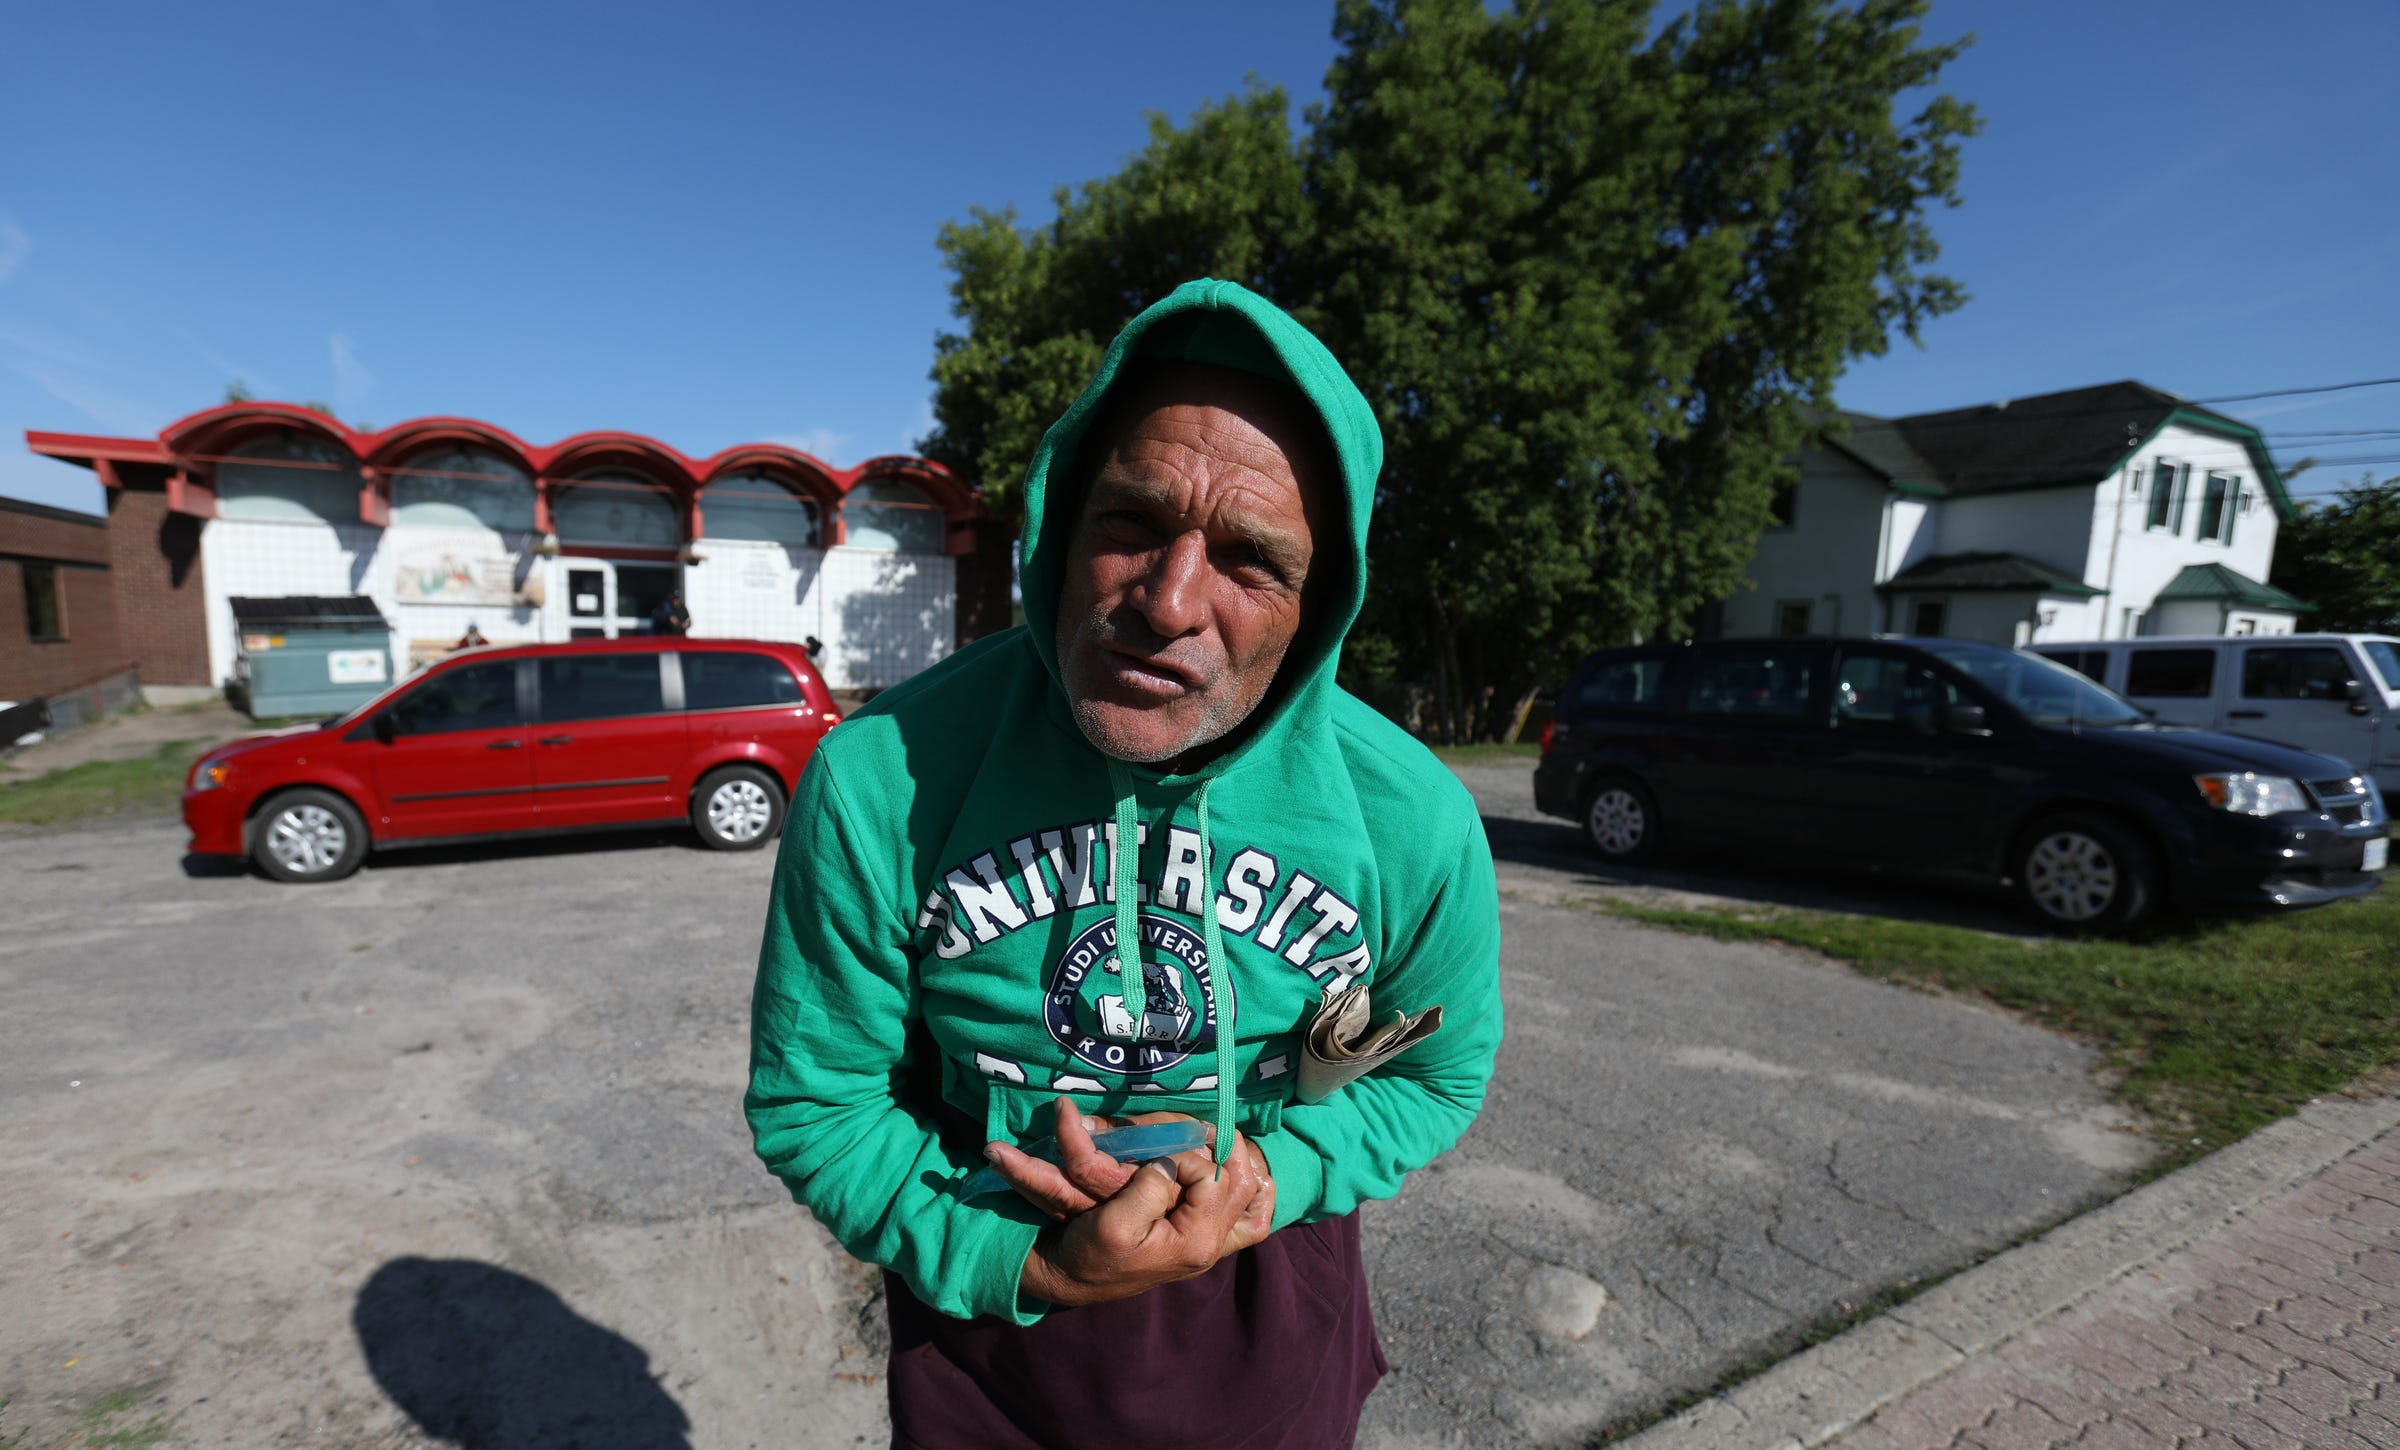 Coming out of the Fellowship Centre, a place for the homeless to get food, shelter, clothes and a shower, Joe Murphy starts talking to Detroit Free Press photojournalist Eric Seals about spirits and UFO's before he left to wander around the town of Kenora, Ontario, Canada on Thursday morning, July 10, 2019.After living in a hotel in Kenora, Ontario, Canada set up by former NHL hockey players, former Detroit Red Wings player Joe Murphy is back on the streets of that city and homeless.